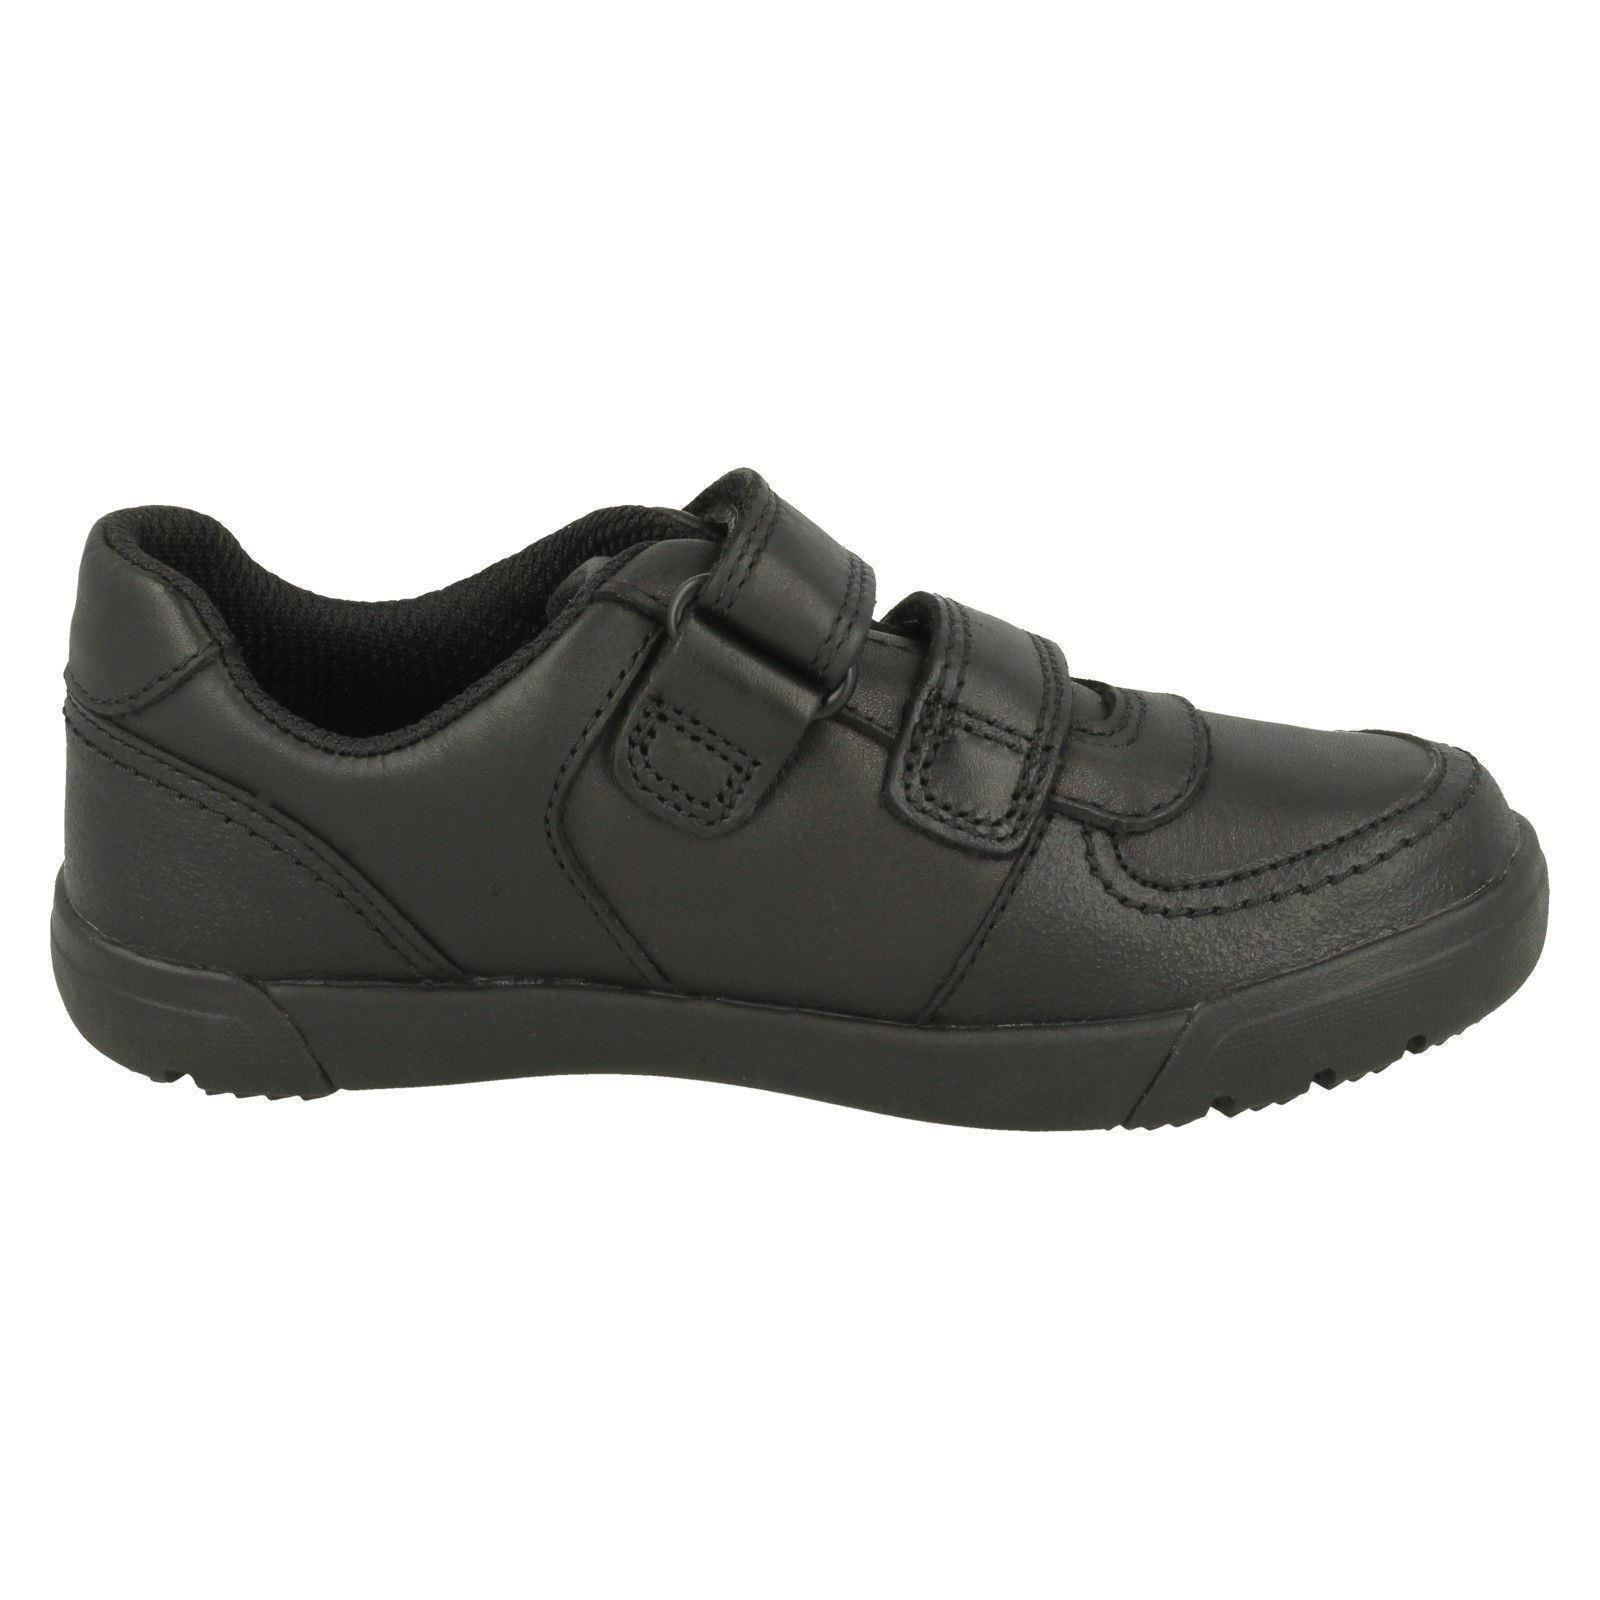 Childrens Clarks /'Orbit Ride/' Black Leather Casual Hook /& Loop Strap Trainers